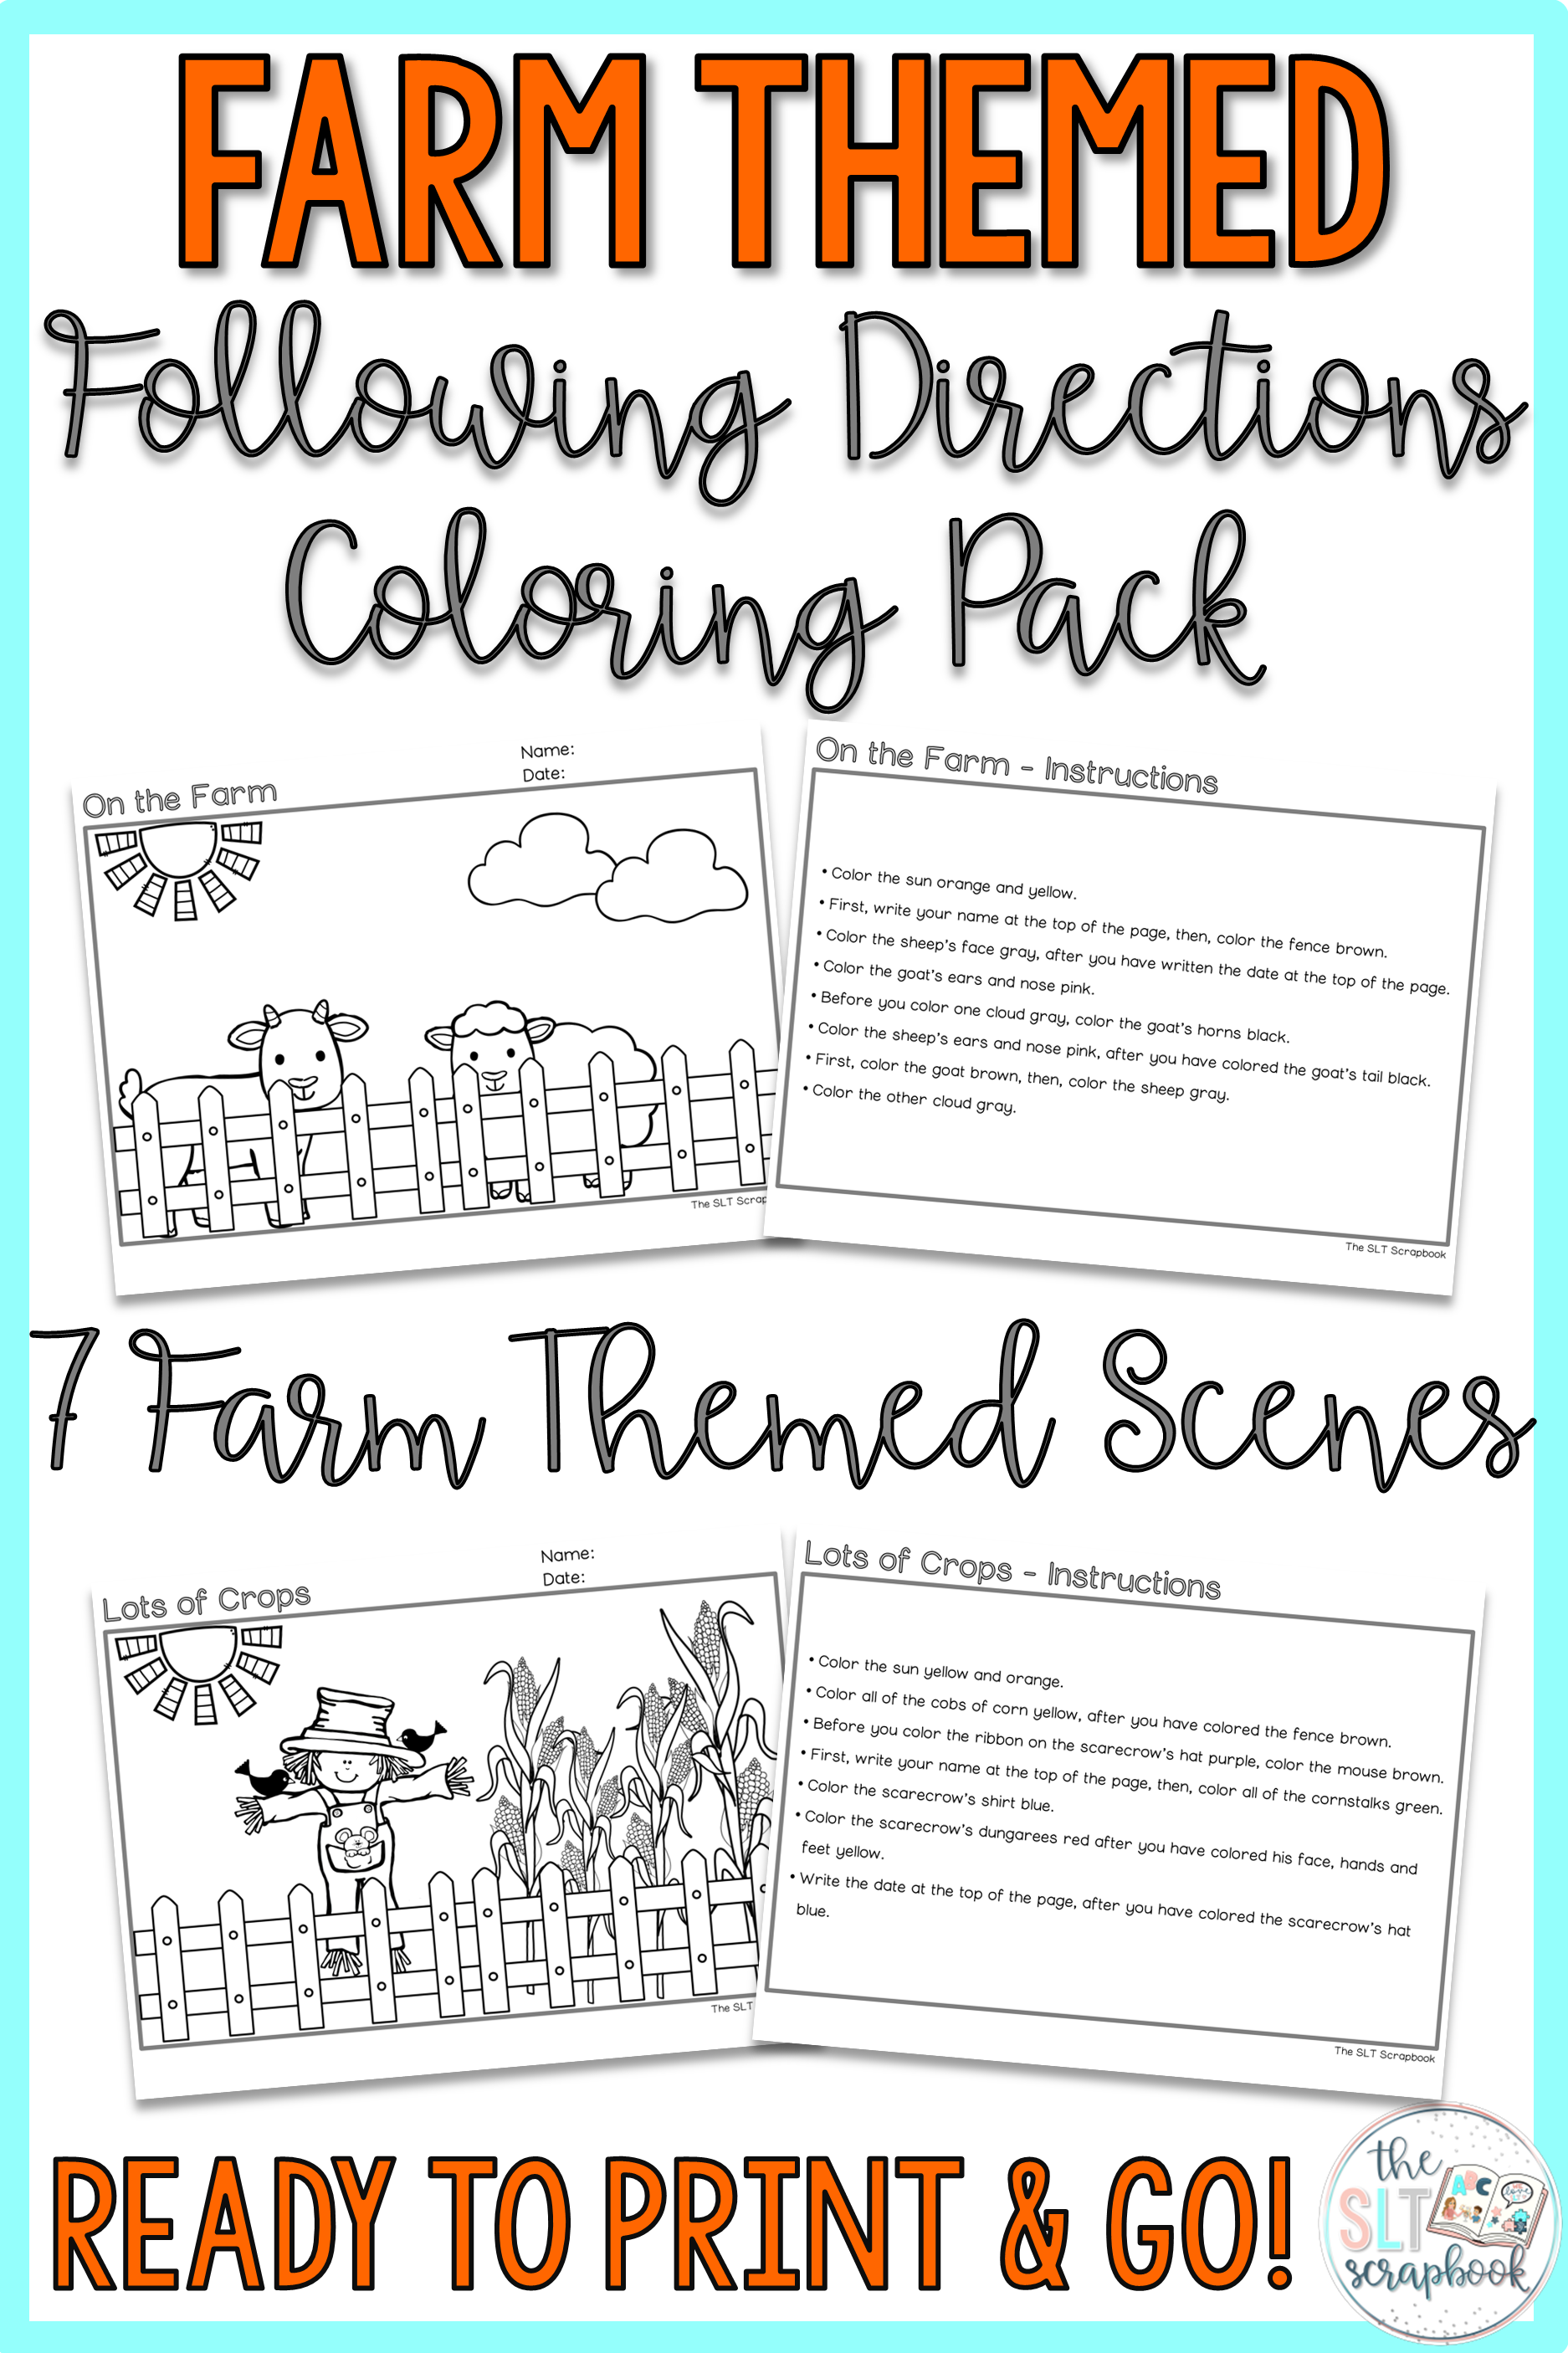 Farm Themed Following Directions Coloring Pack Mixed